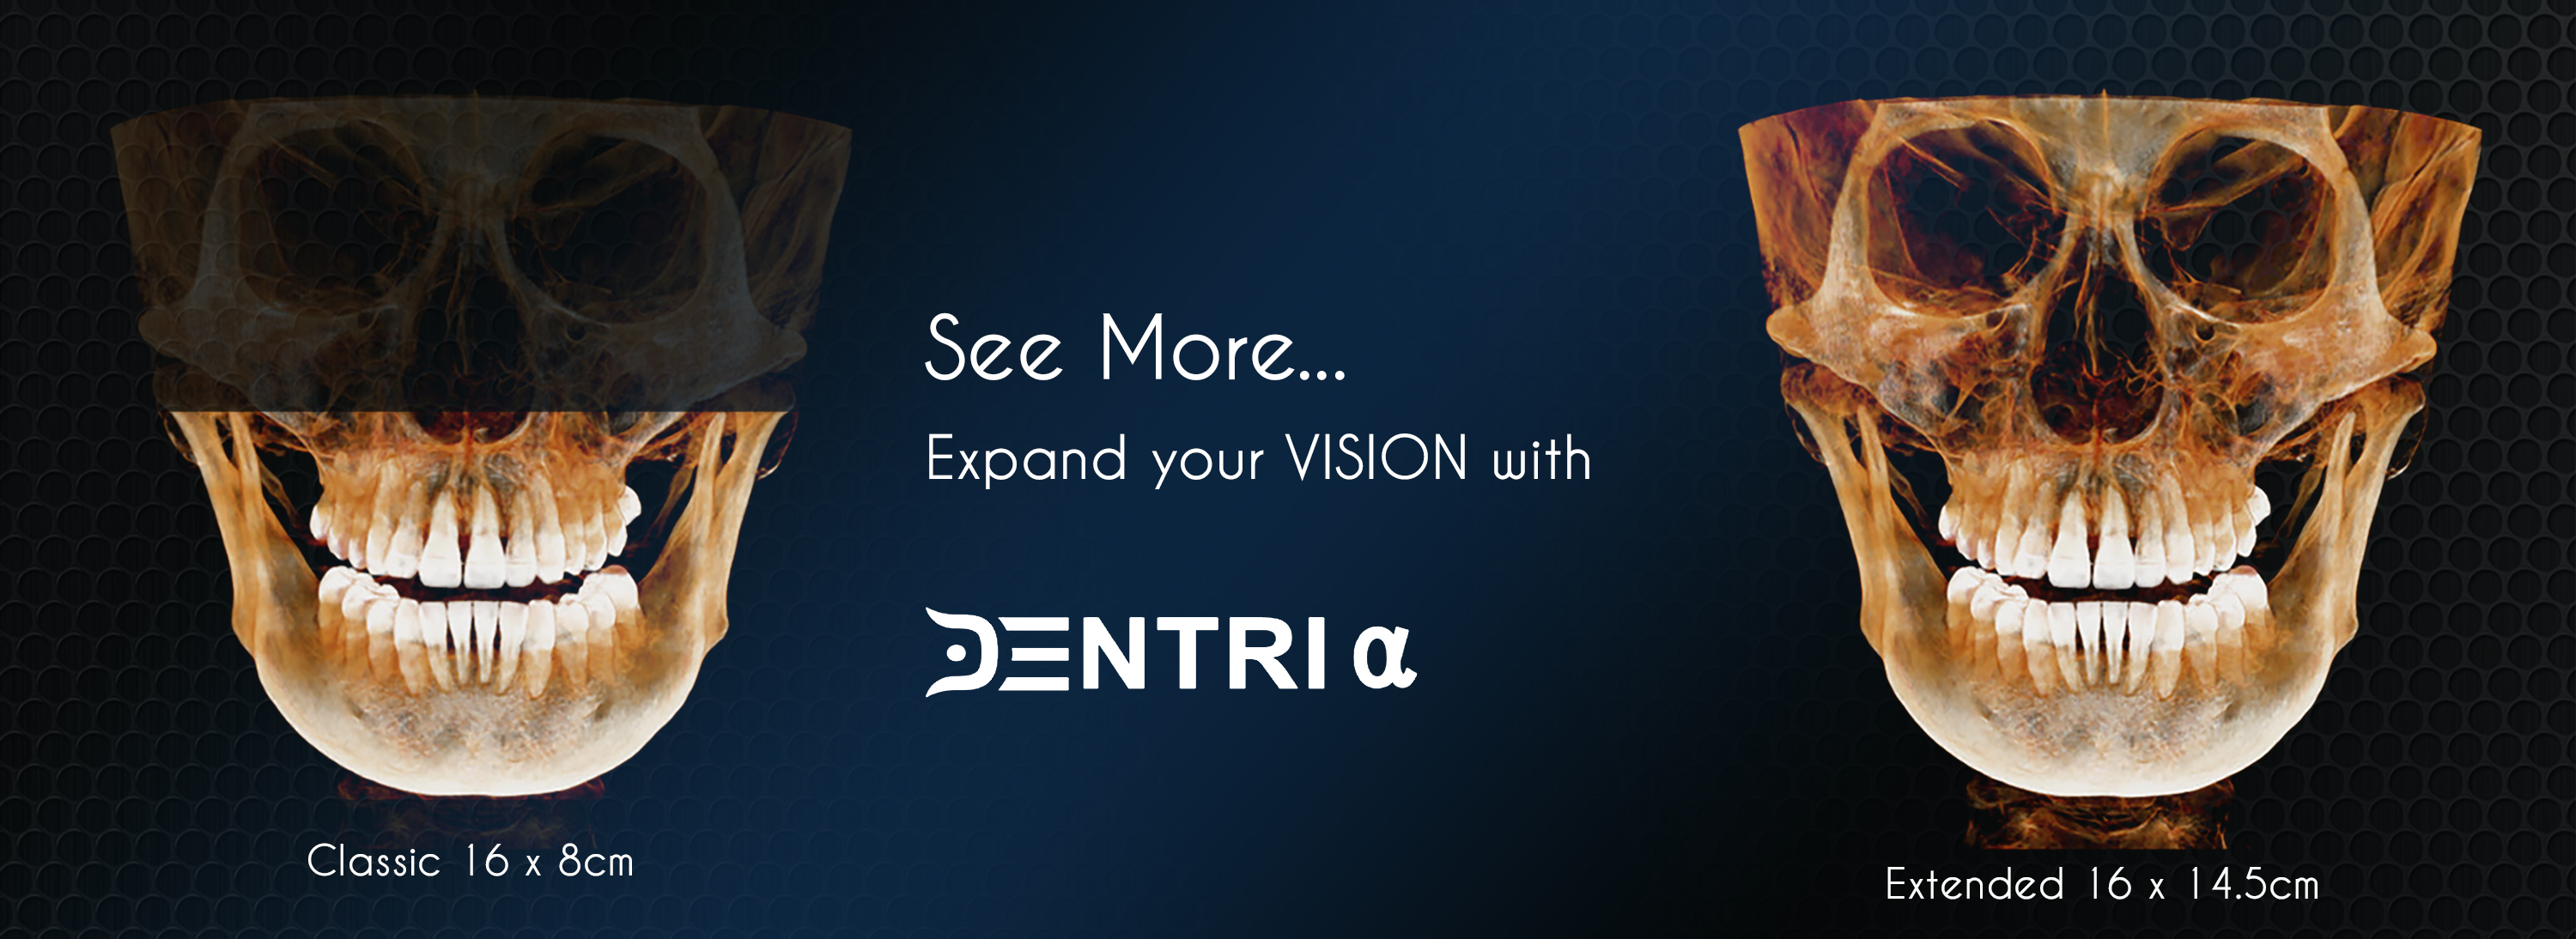 See more, expand your vision with Dentri. classic 16 x 8cm, extended 16 x 14.5cm